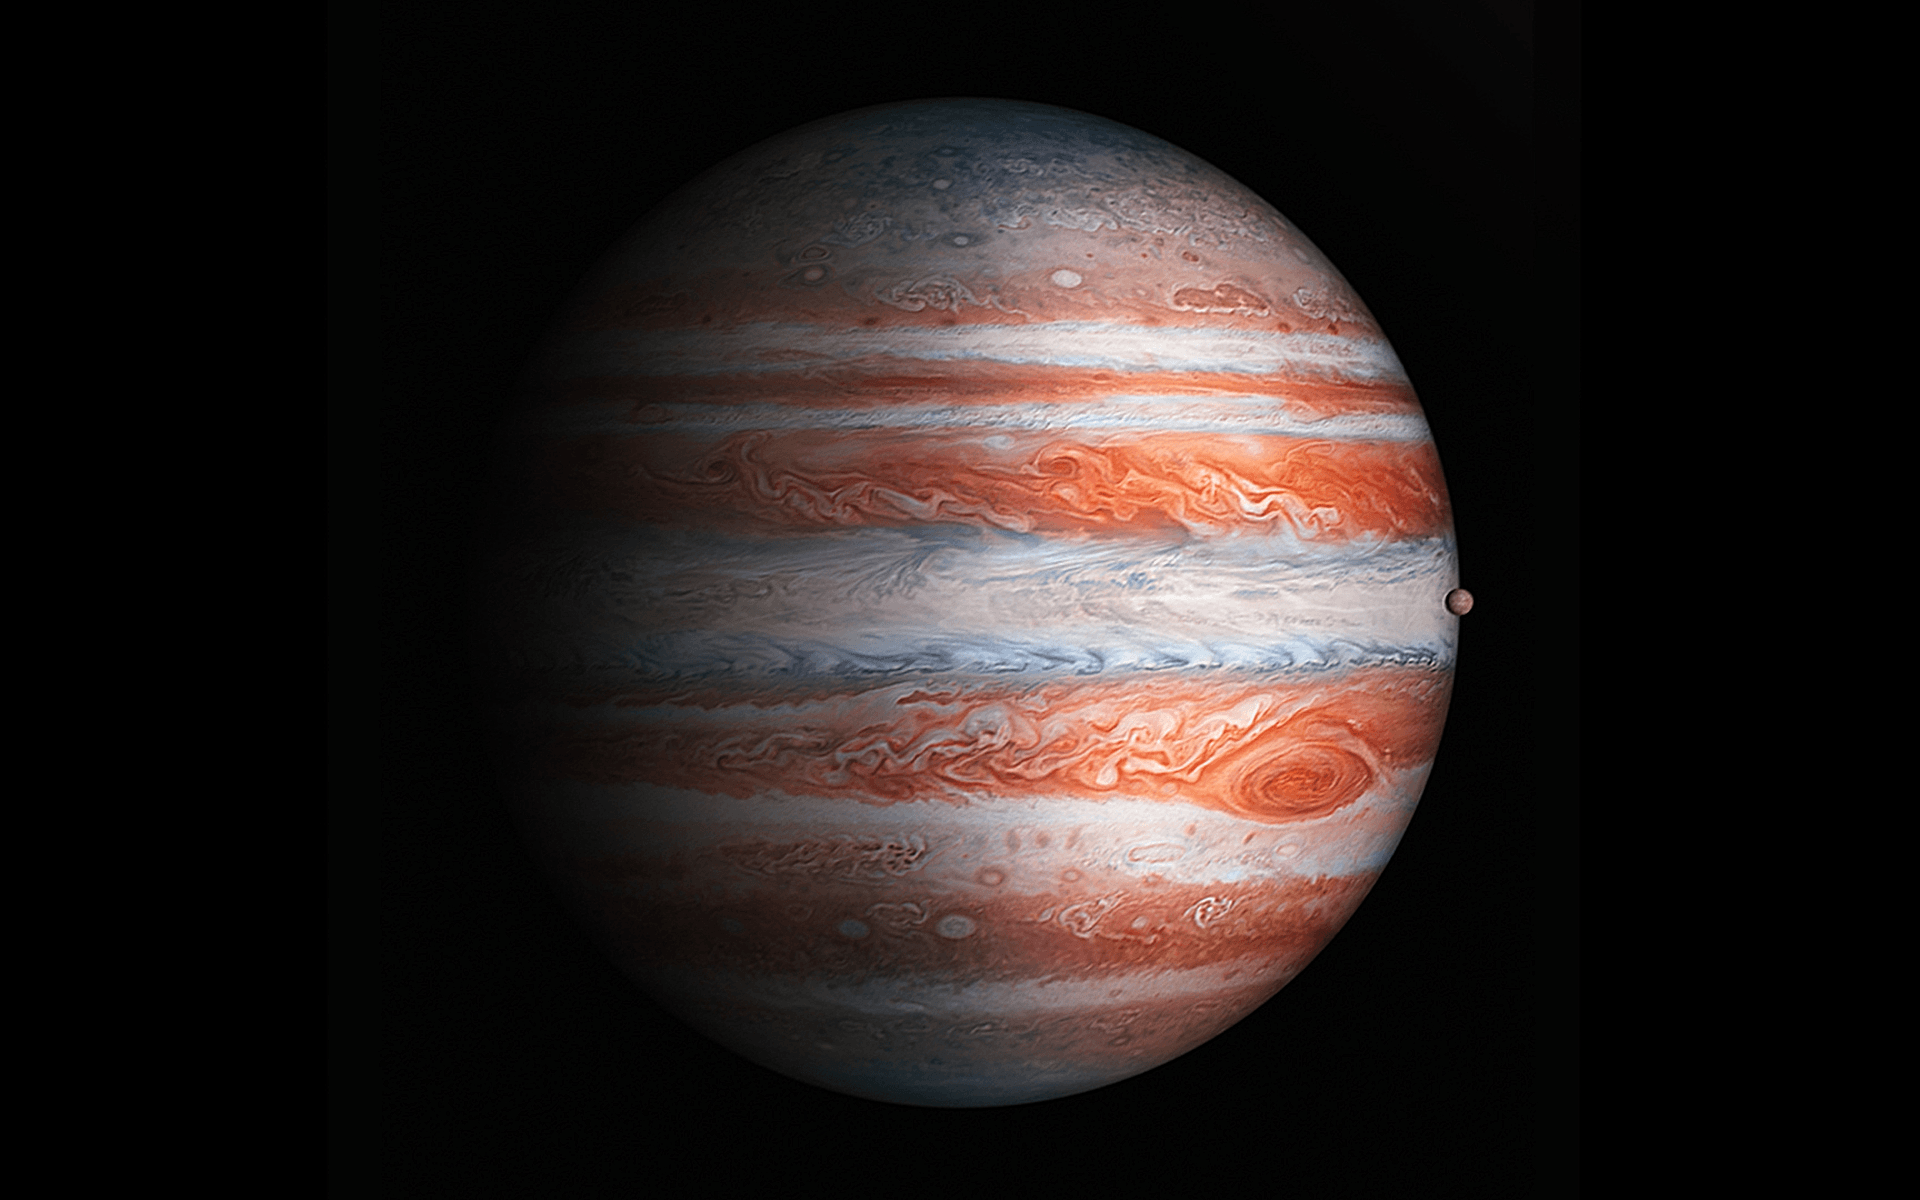 1920x1200 iPad Pro/iPhone Jupiter Wallpaper | Iphone Wallpapers | Pinterest ...